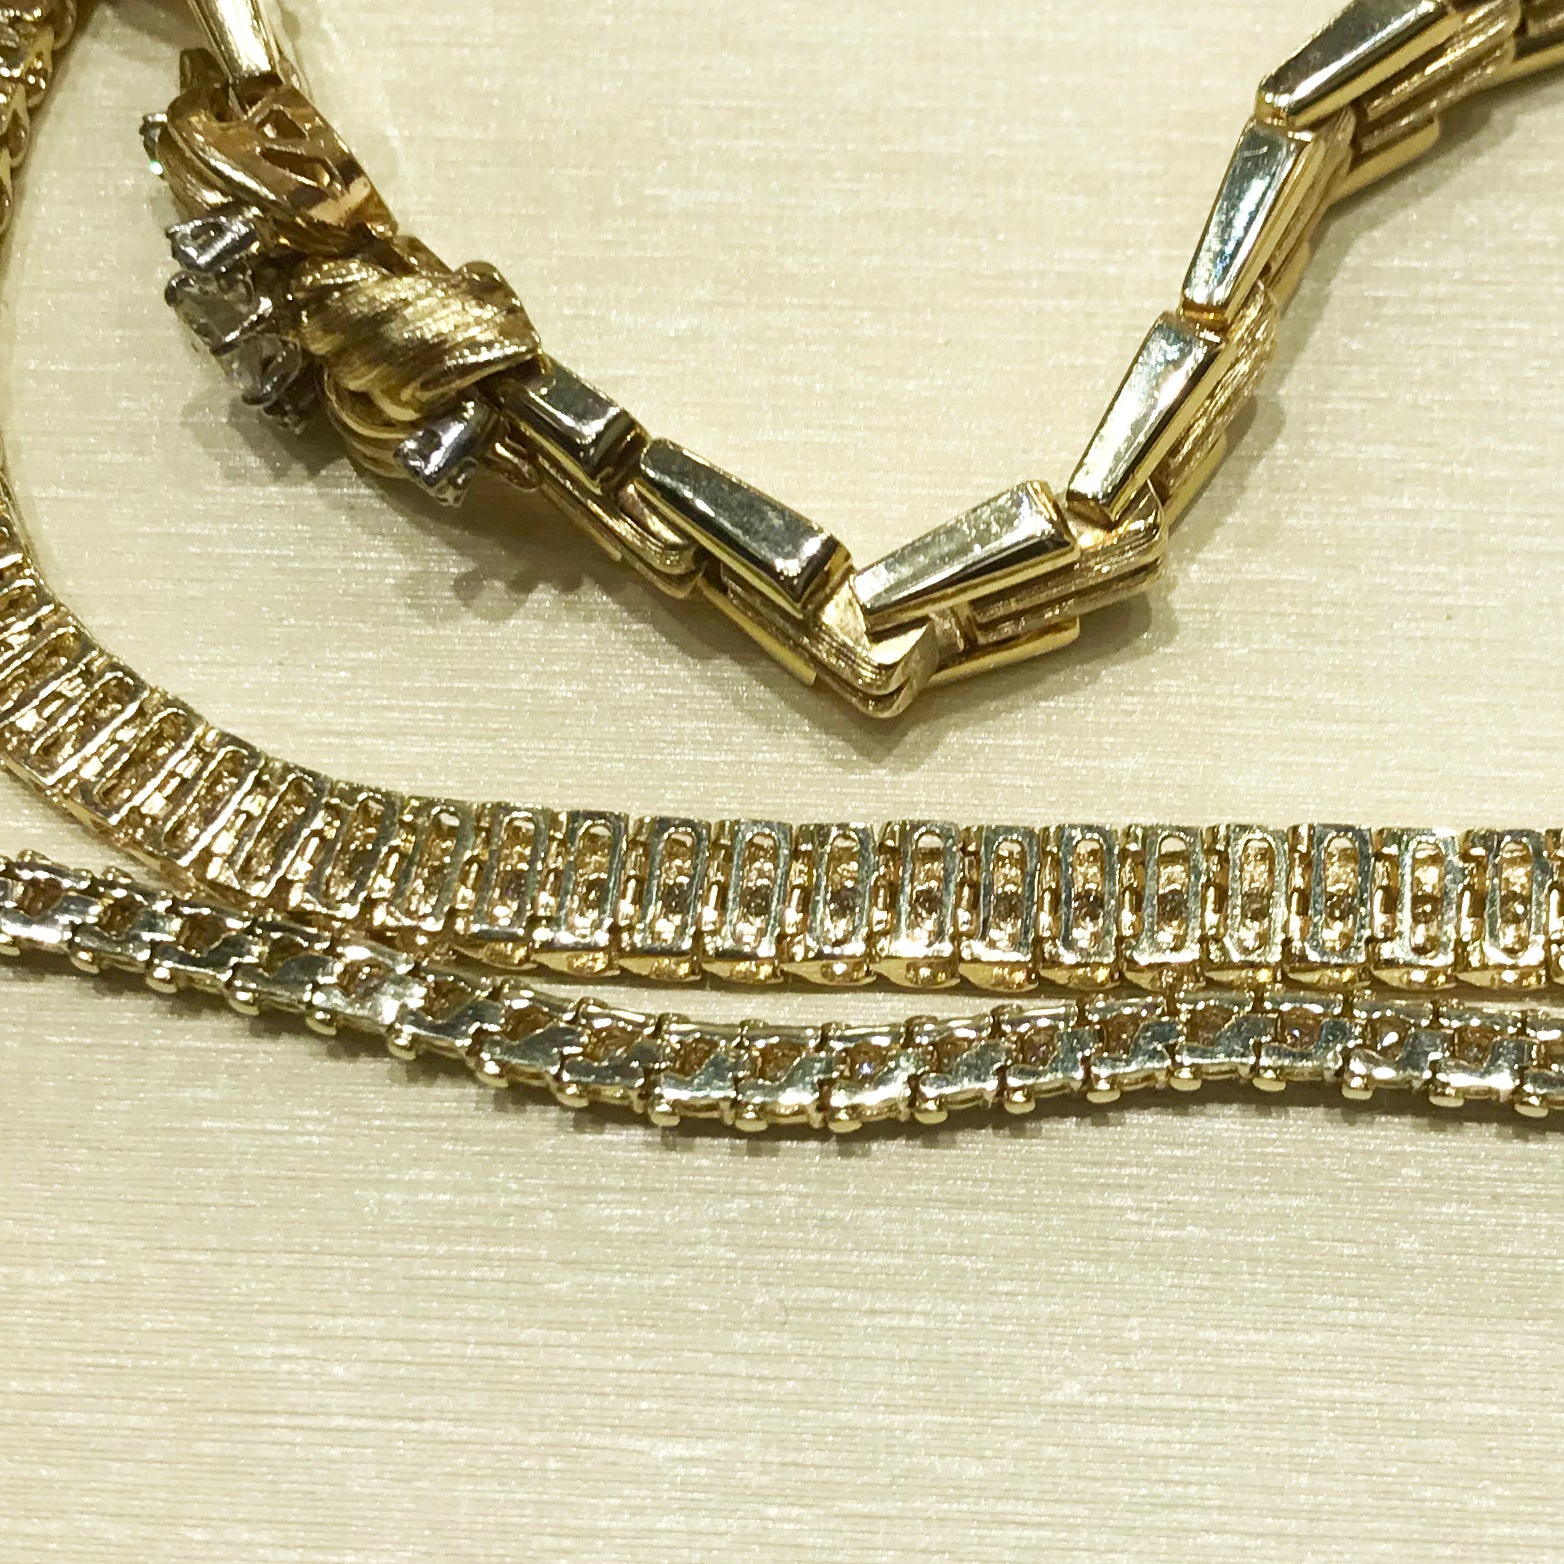 Bracelet Repair: Replace Tube & Pin (i.e. Tennis Bracelets)